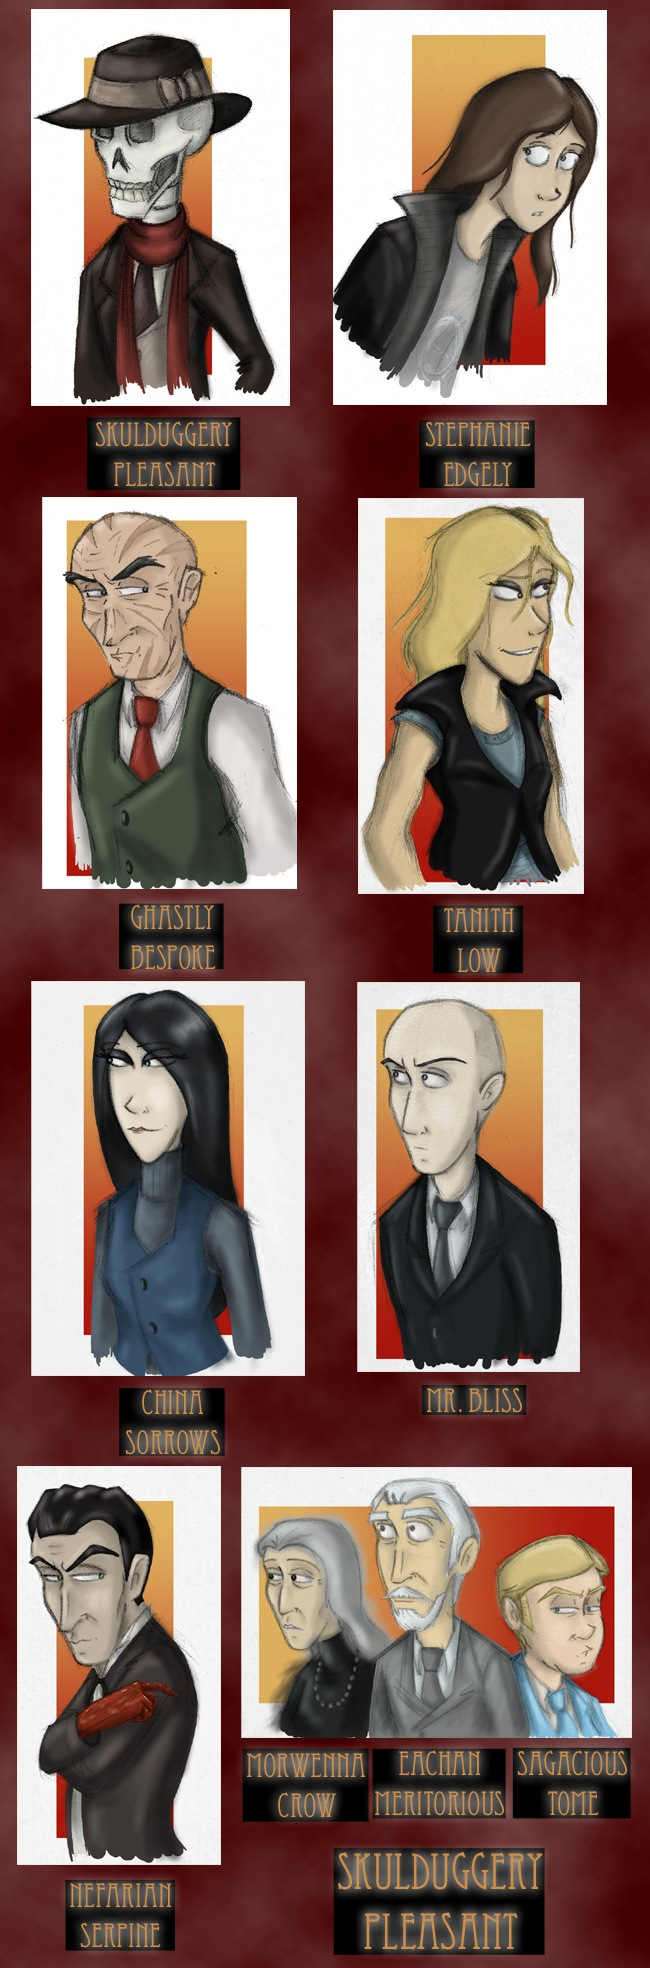 Fun Time clipart pleasant 1 about :D Skulduggery Pleasant